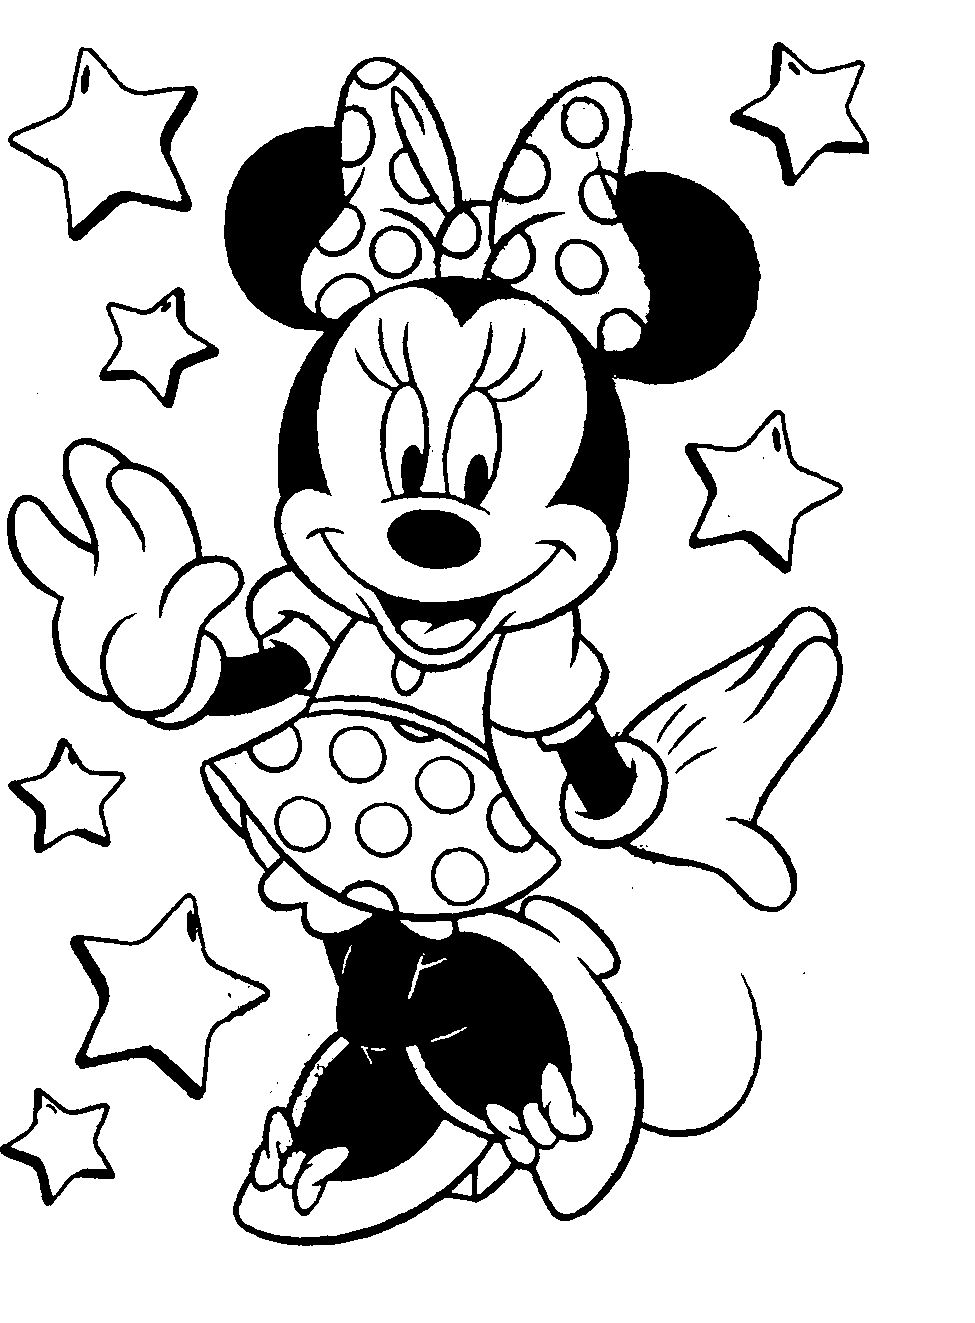 Mickey Mouse Using Costume Coloring Pages Mickey Mouse Coloring Pages Minnie Mouse Coloring Pages Cartoon Coloring Pages